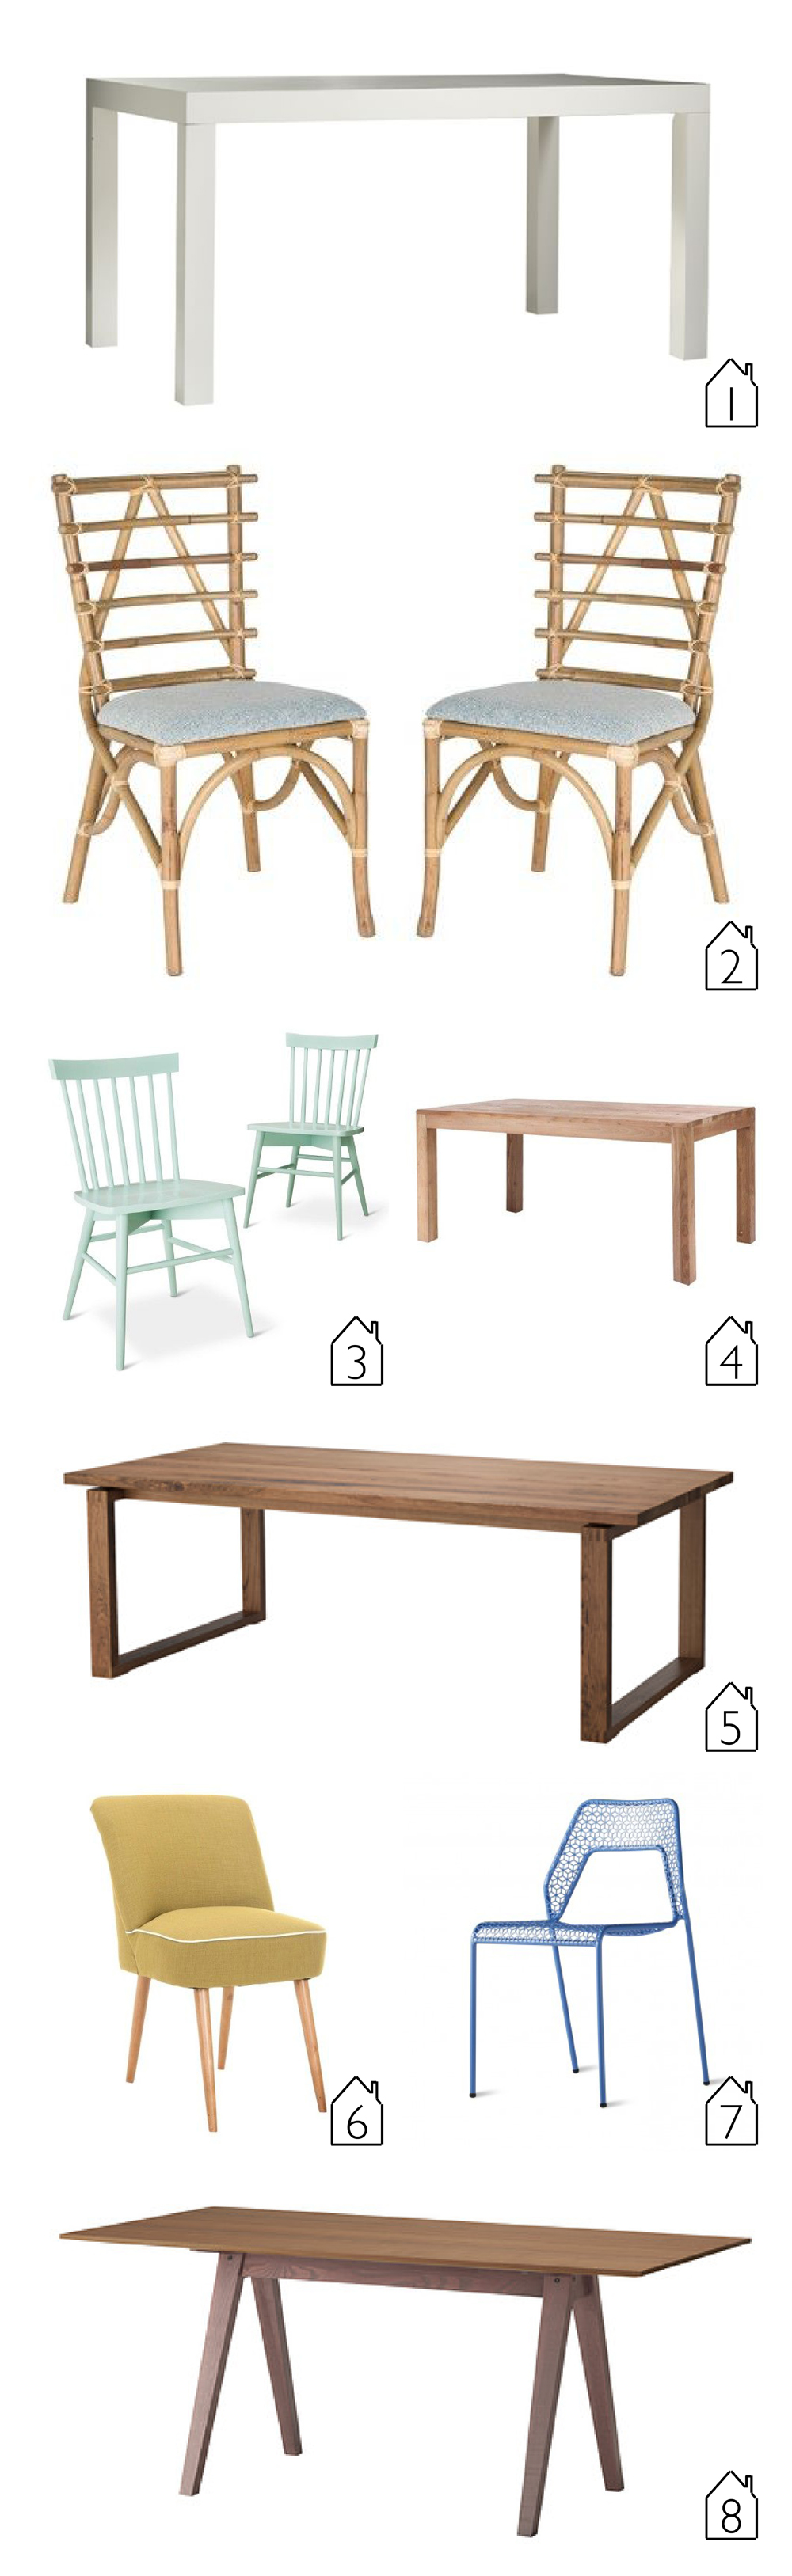 1. West Elm Parsons Dining Table  2. Target Safavieh Kennedy Side Chairs  3. Target Threshold Windsor Chair  4. Target Zuo Fillmore Dining Table  5. IKEA Morbylanga Table  6. Target Safavieh Soho Chair  7. Blu Dot Hot Mesh Chair  8. IKEA Stockholm Table